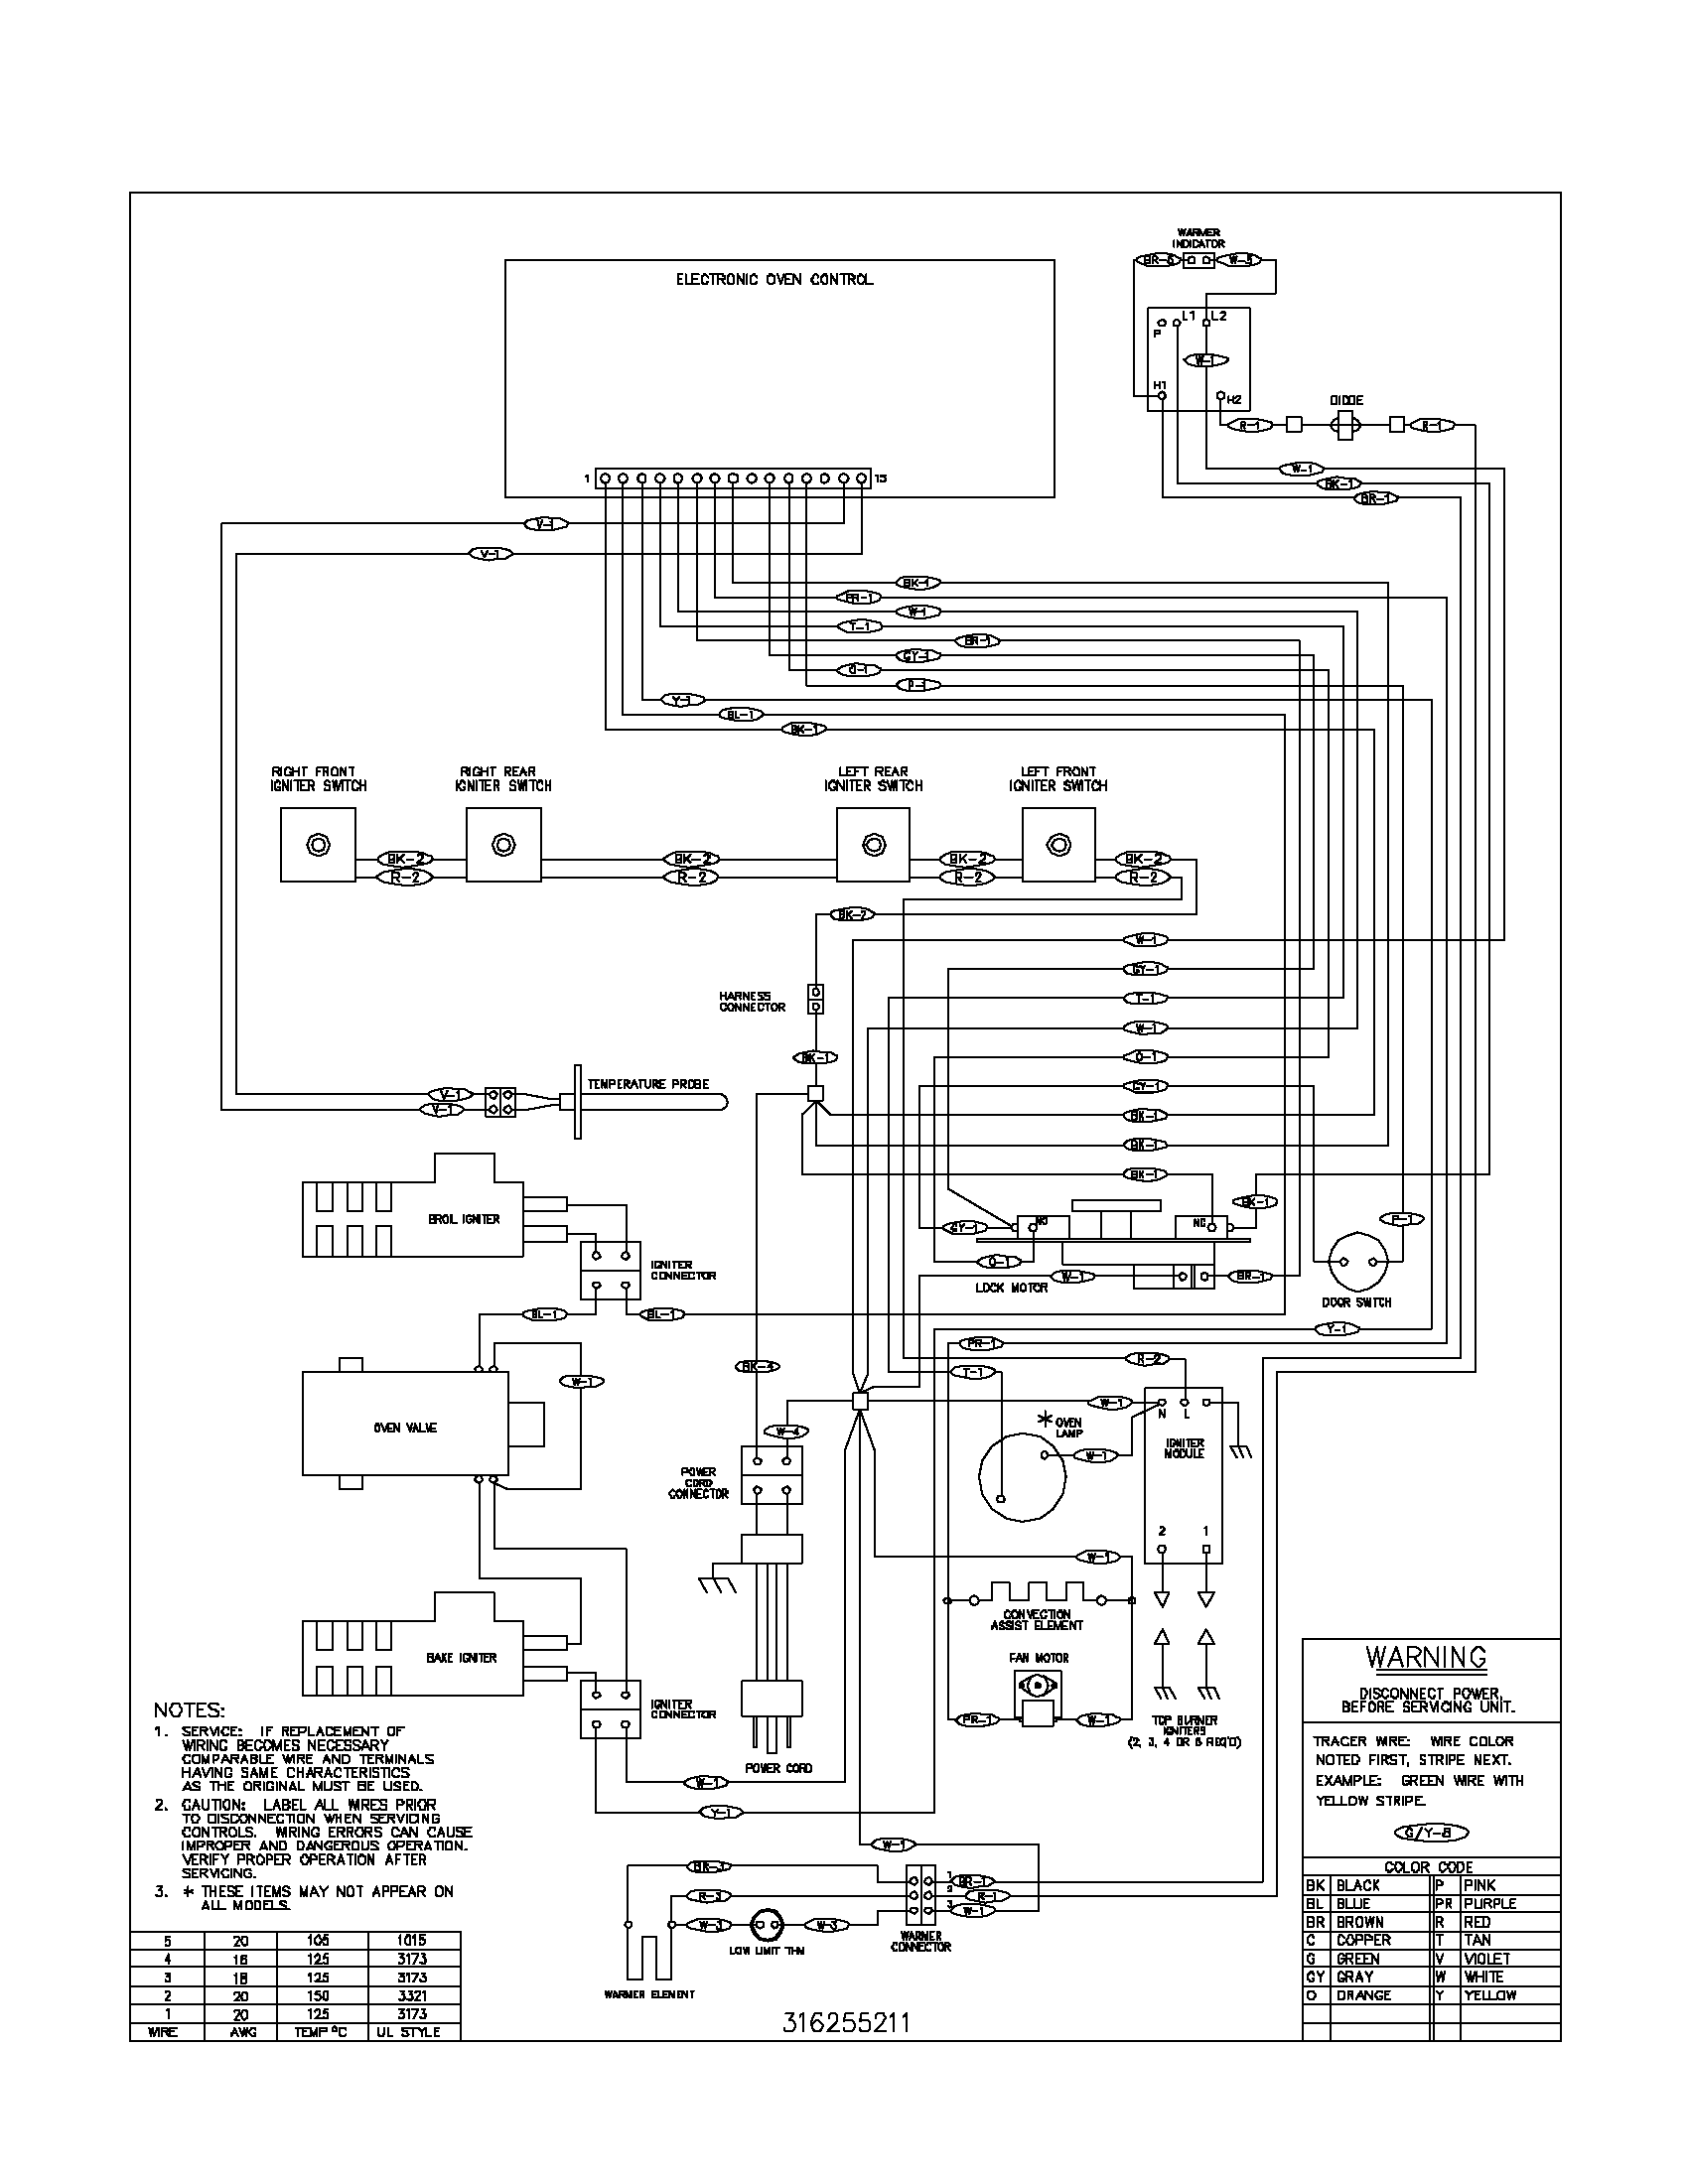 wiring diagram parts frigidaire plgf389ccb gas range timer stove clocks and appliance frigidaire gallery refrigerator wiring diagram at webbmarketing.co